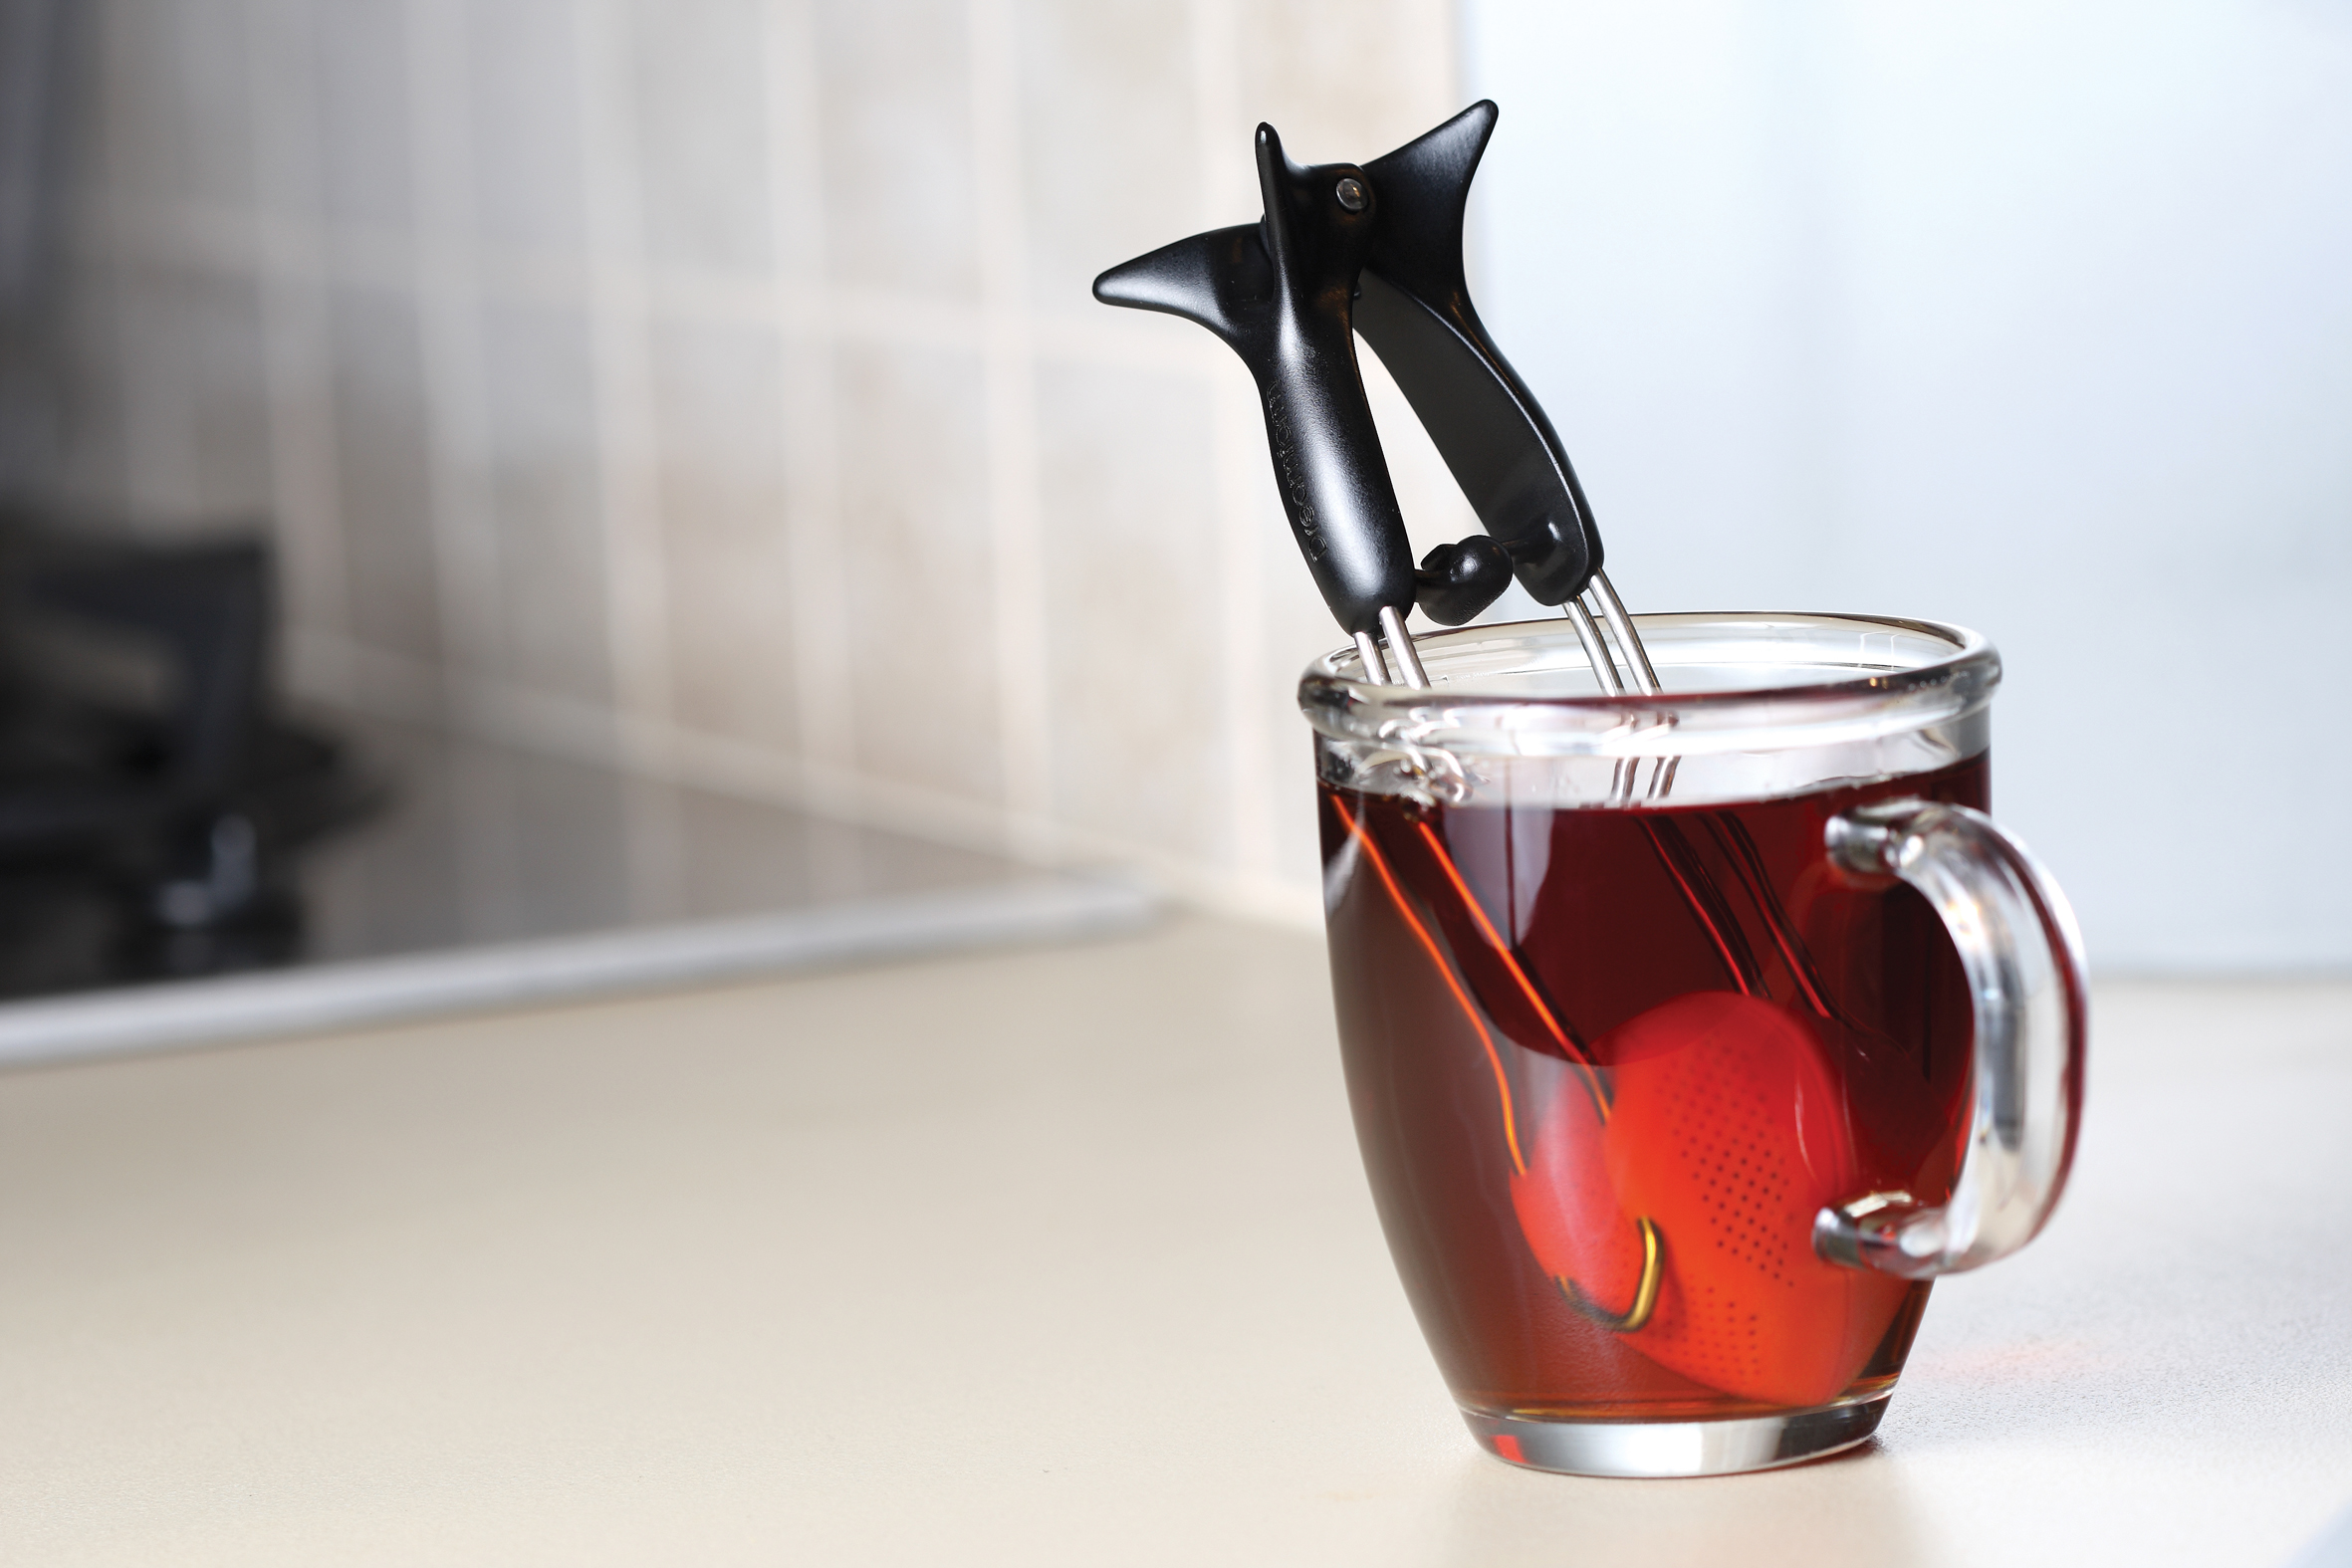 Dreamfarm  Teafu Tea Infuser